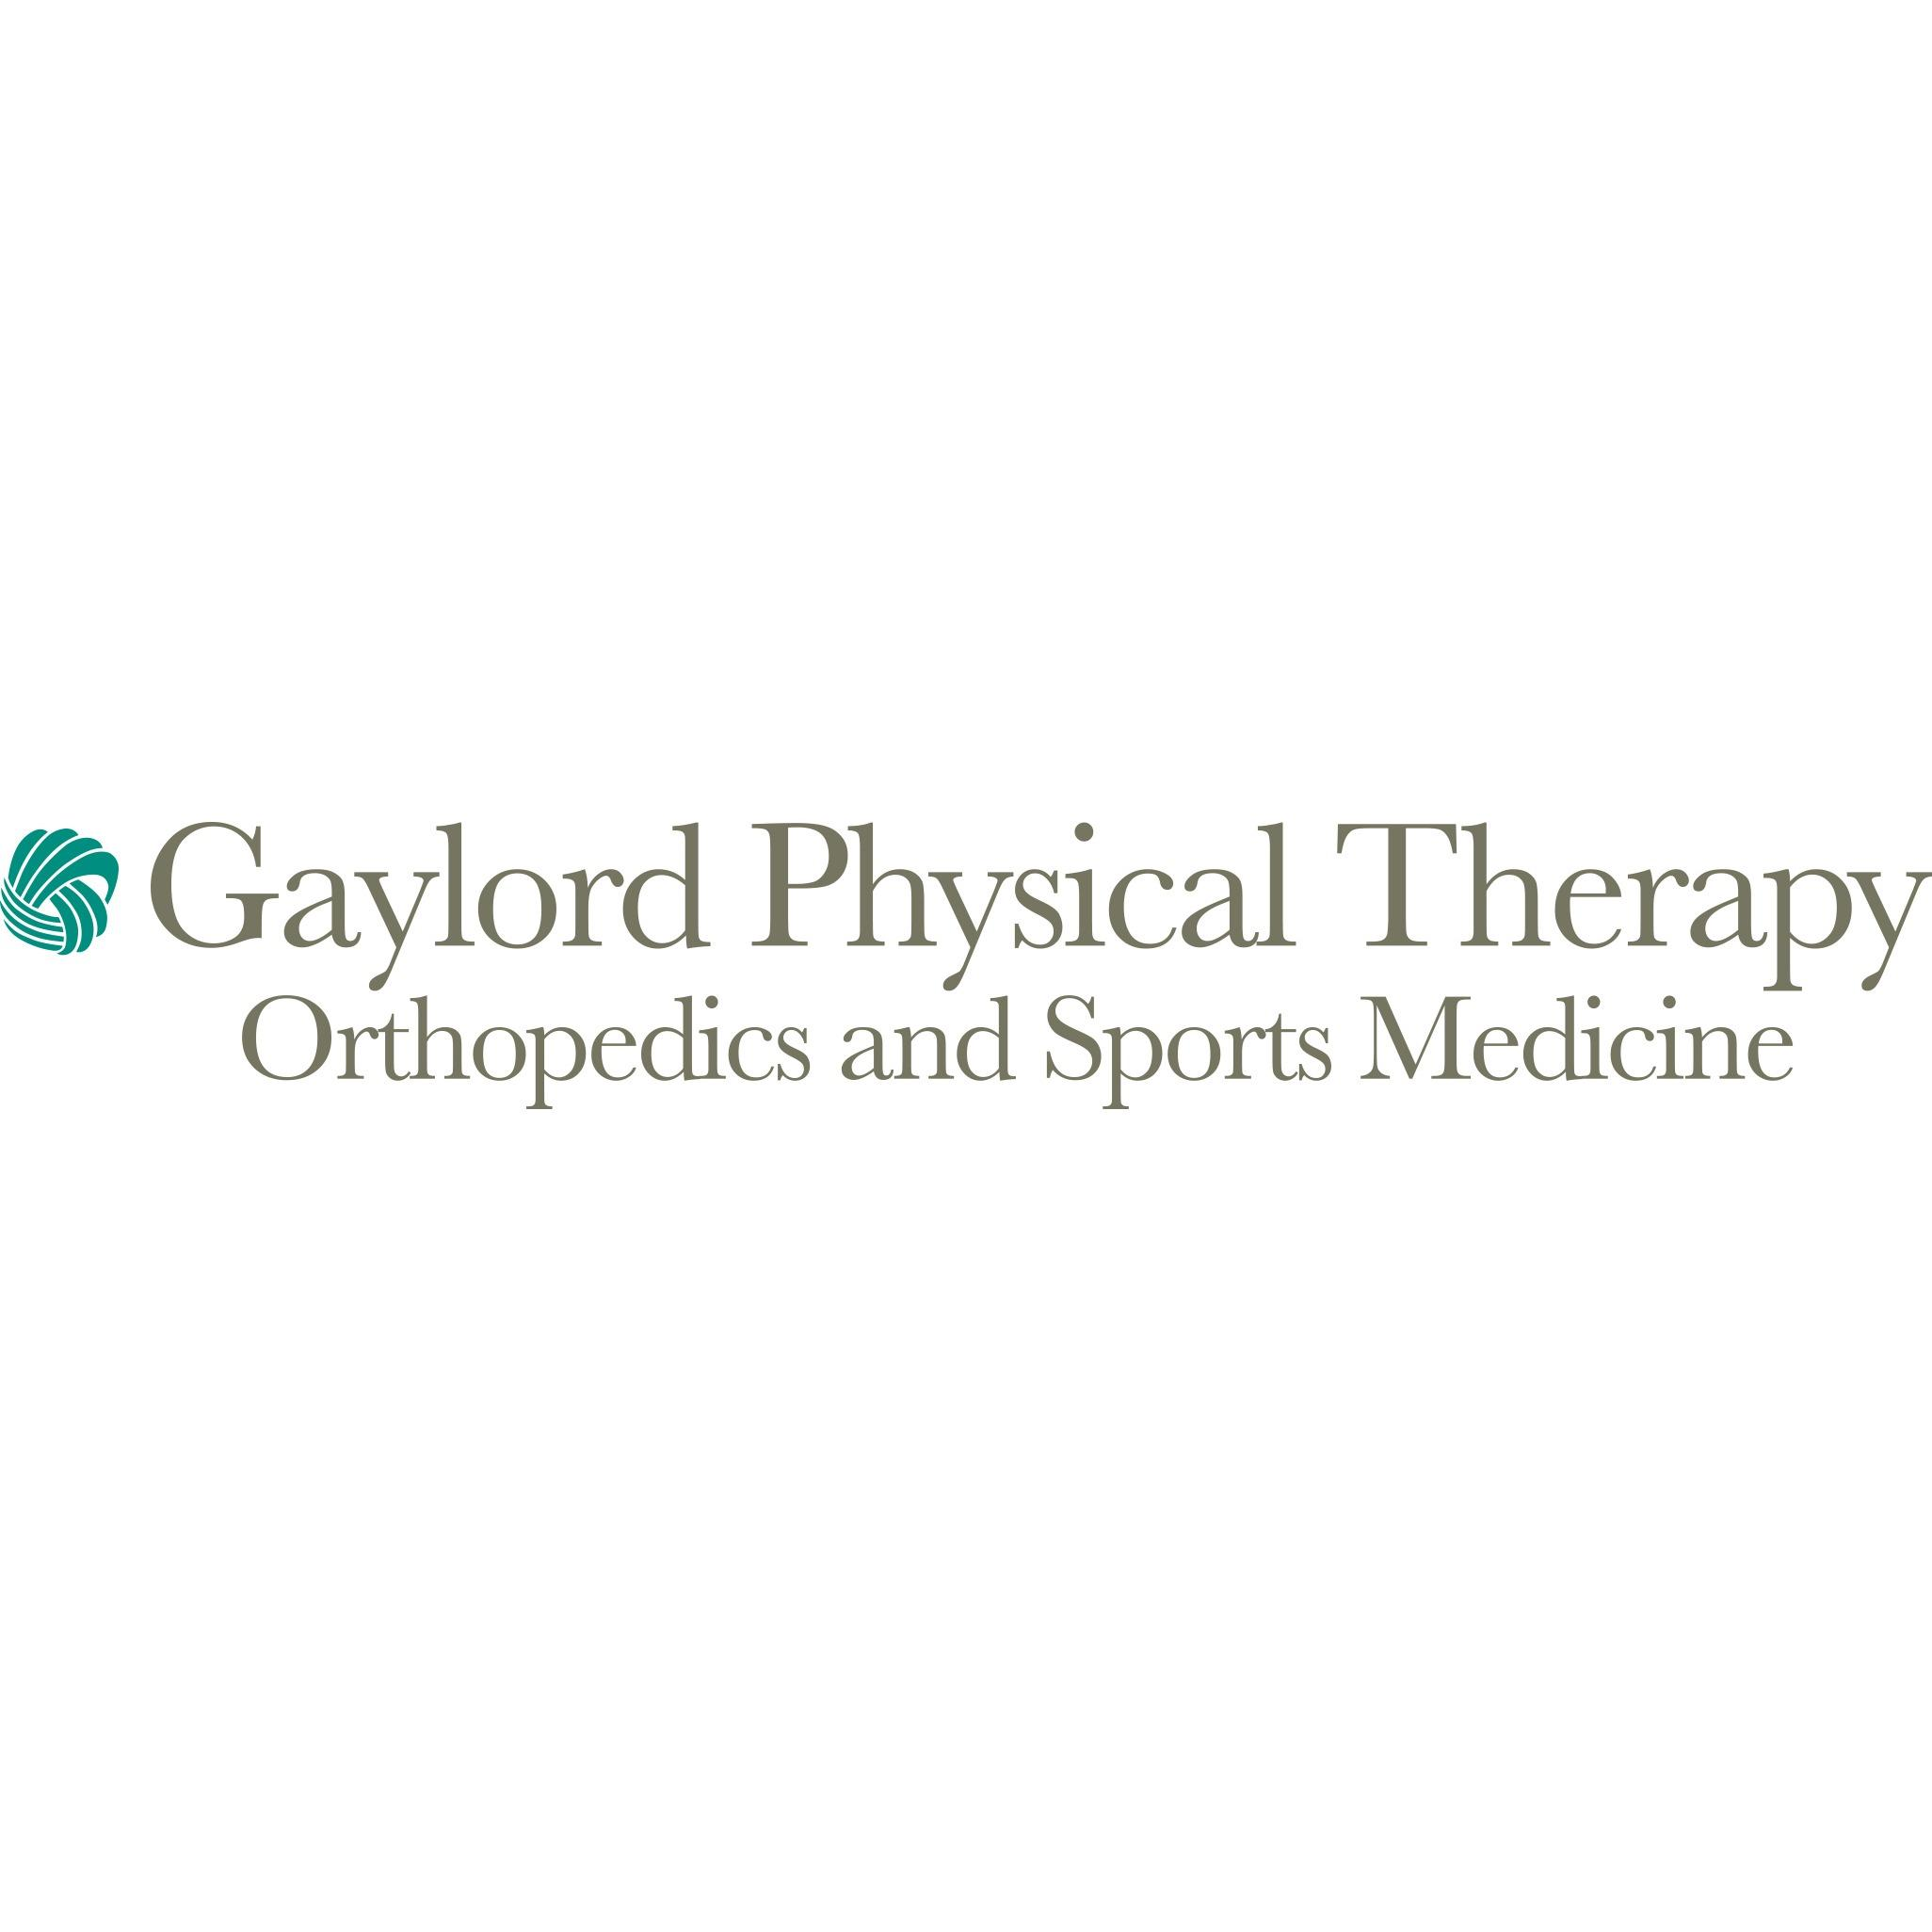 Gaylord Physical Therapy Orthopedics and Sports Medicine